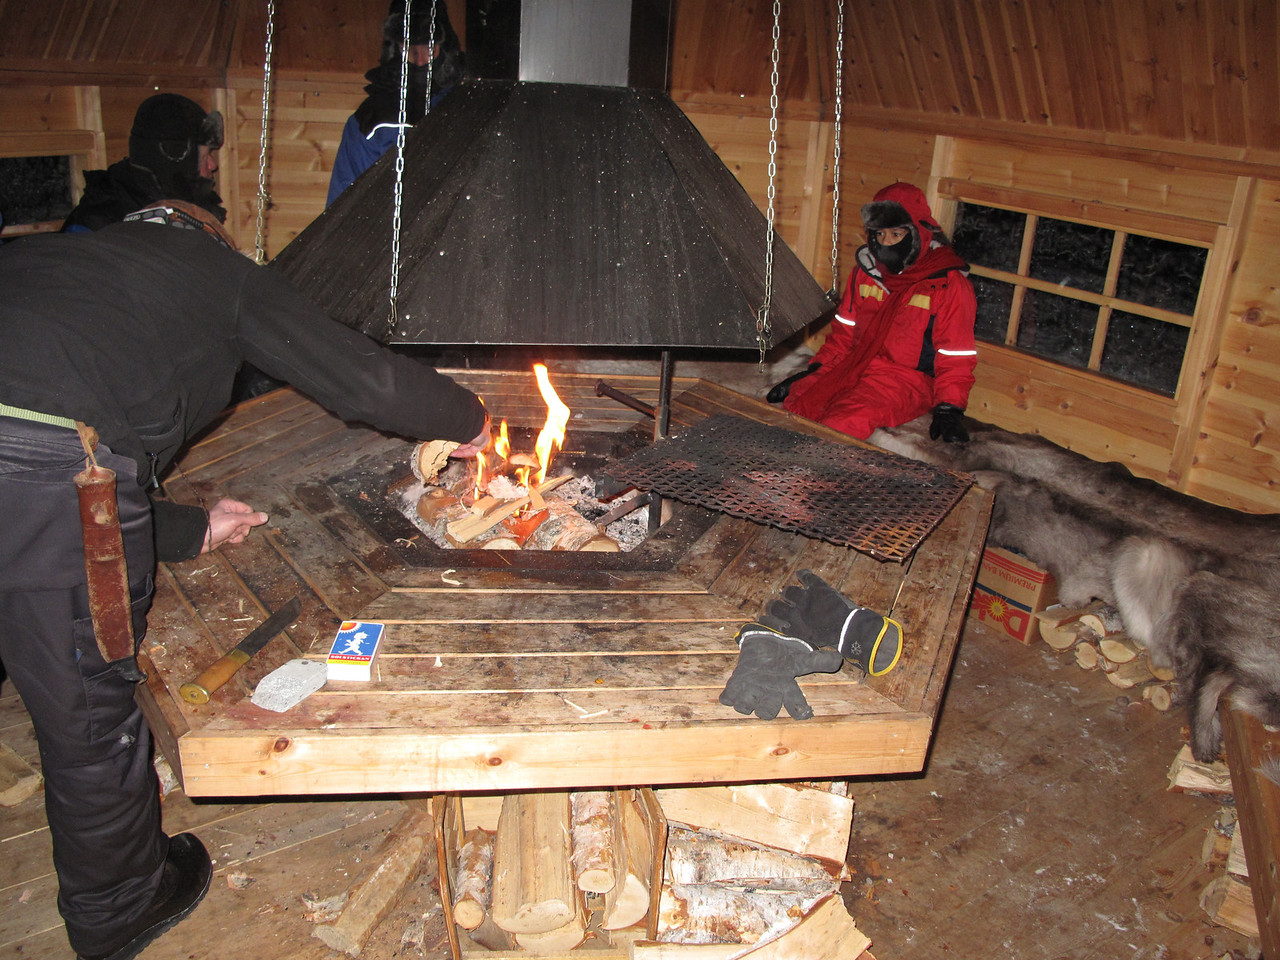 Inside the shed we started a fire in the fire pit and sat on reindeer skins to stay warm.  The temperature outside was in the single digits.